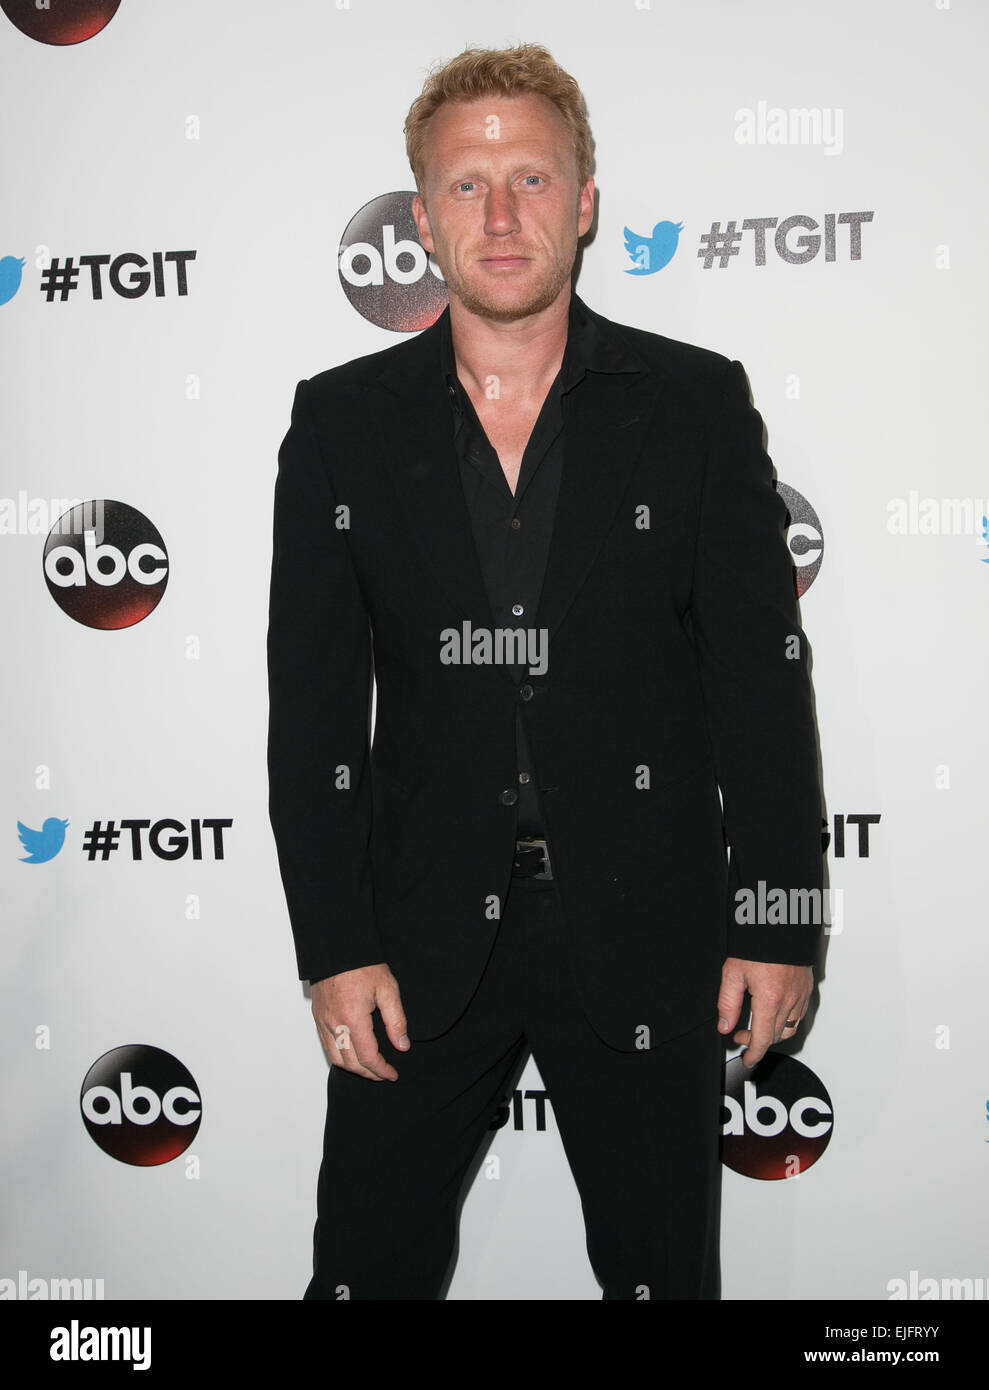 Stock Photo Tgit Premiere Event For Grey's Anatomy, Scandal, How To Get Away  With